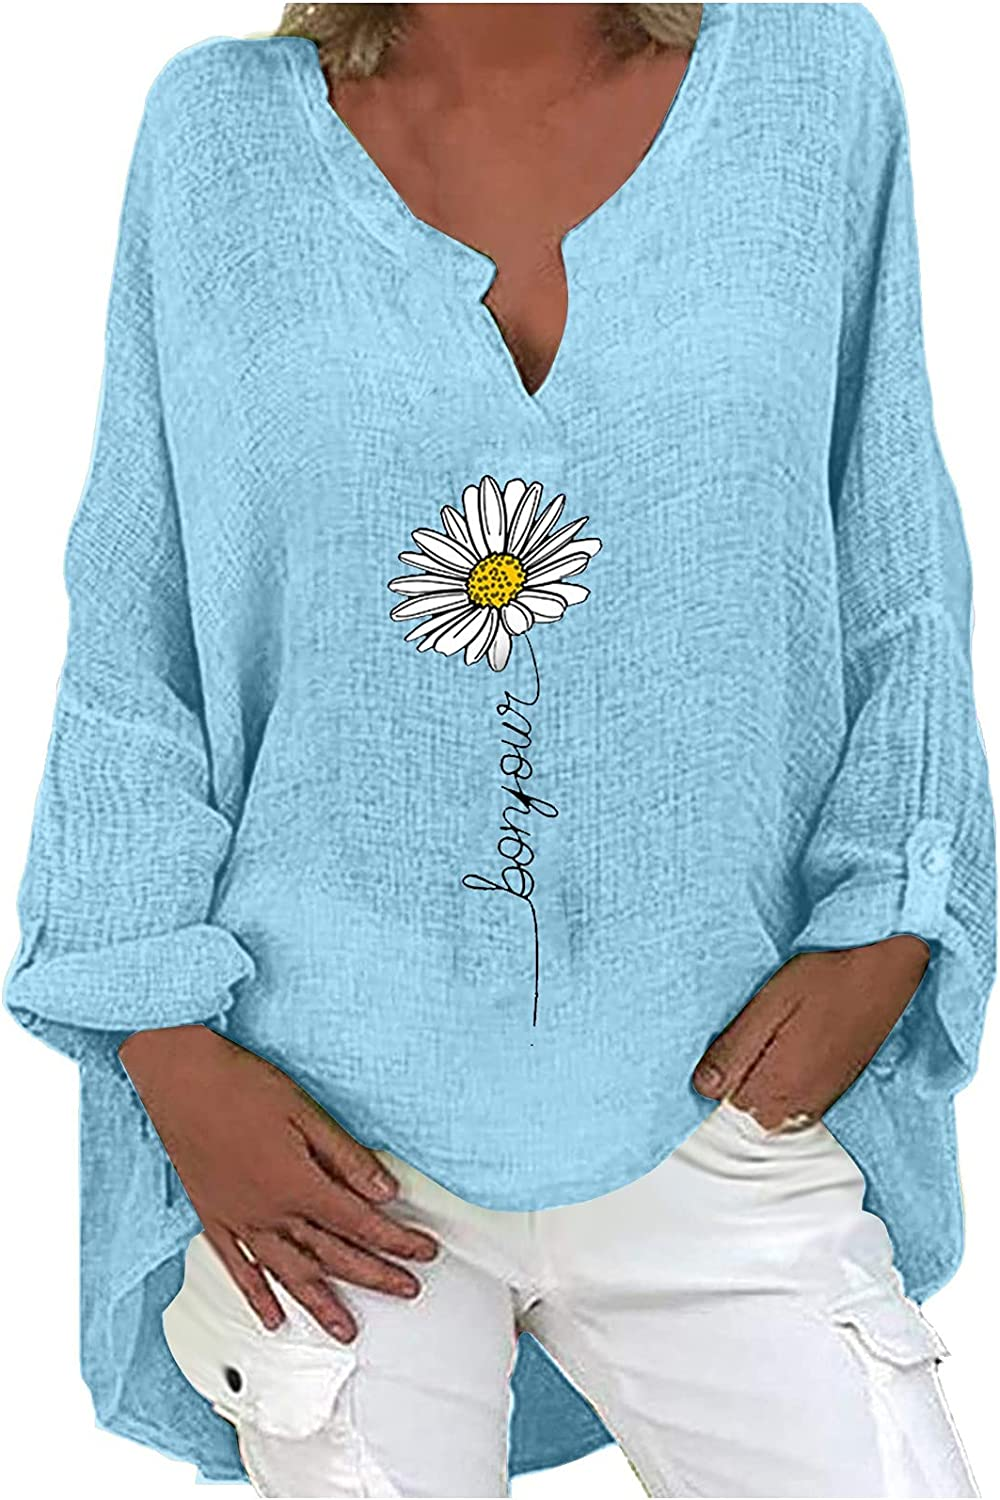 Casual Womens Tops Daisy Printing Blouses V-Neck Long Sleeve T-Shirts Plus Size Loose Cotton and Linen Tees